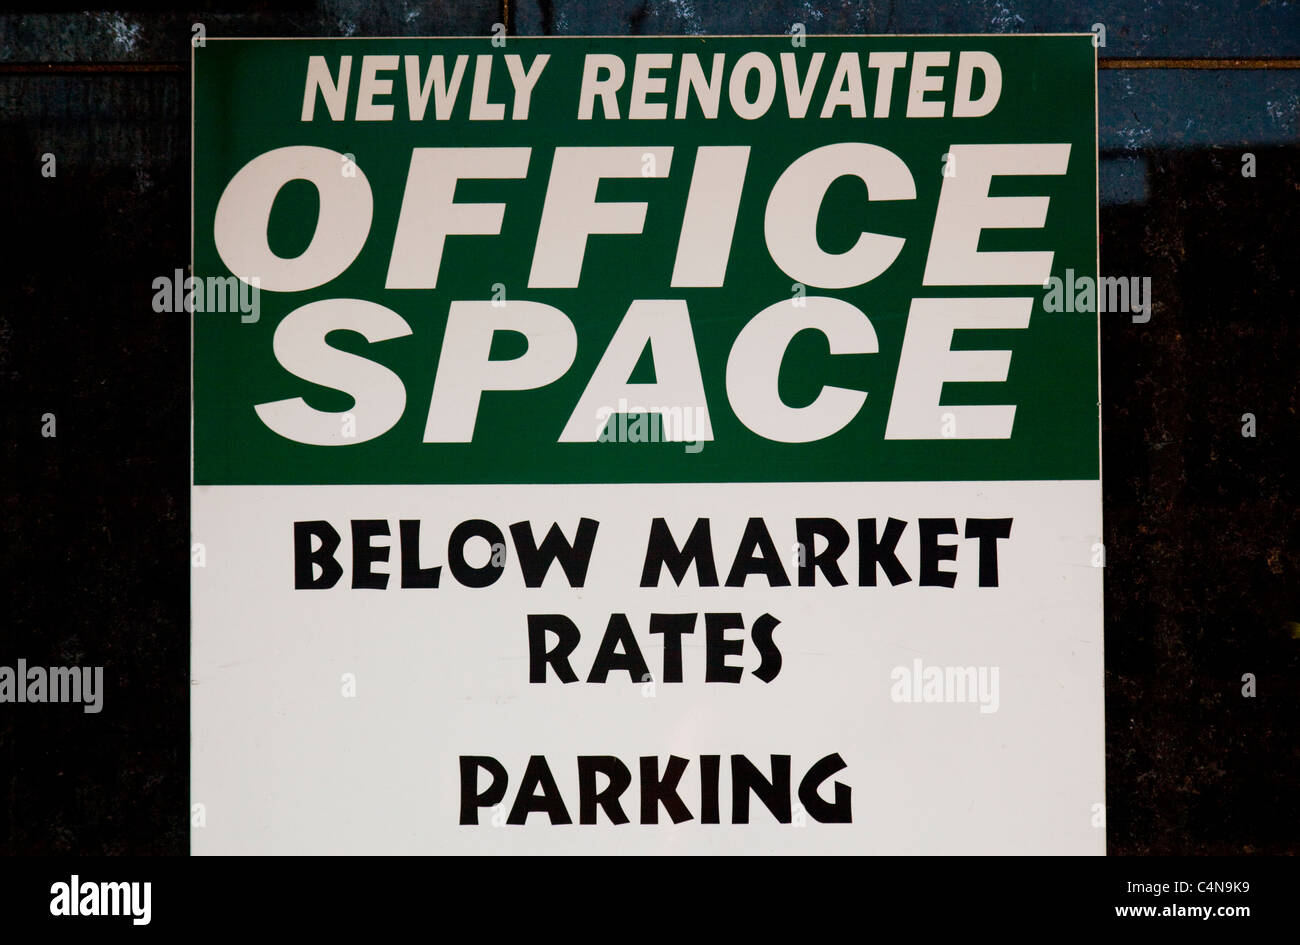 newly renovated office space sign - Stock Image